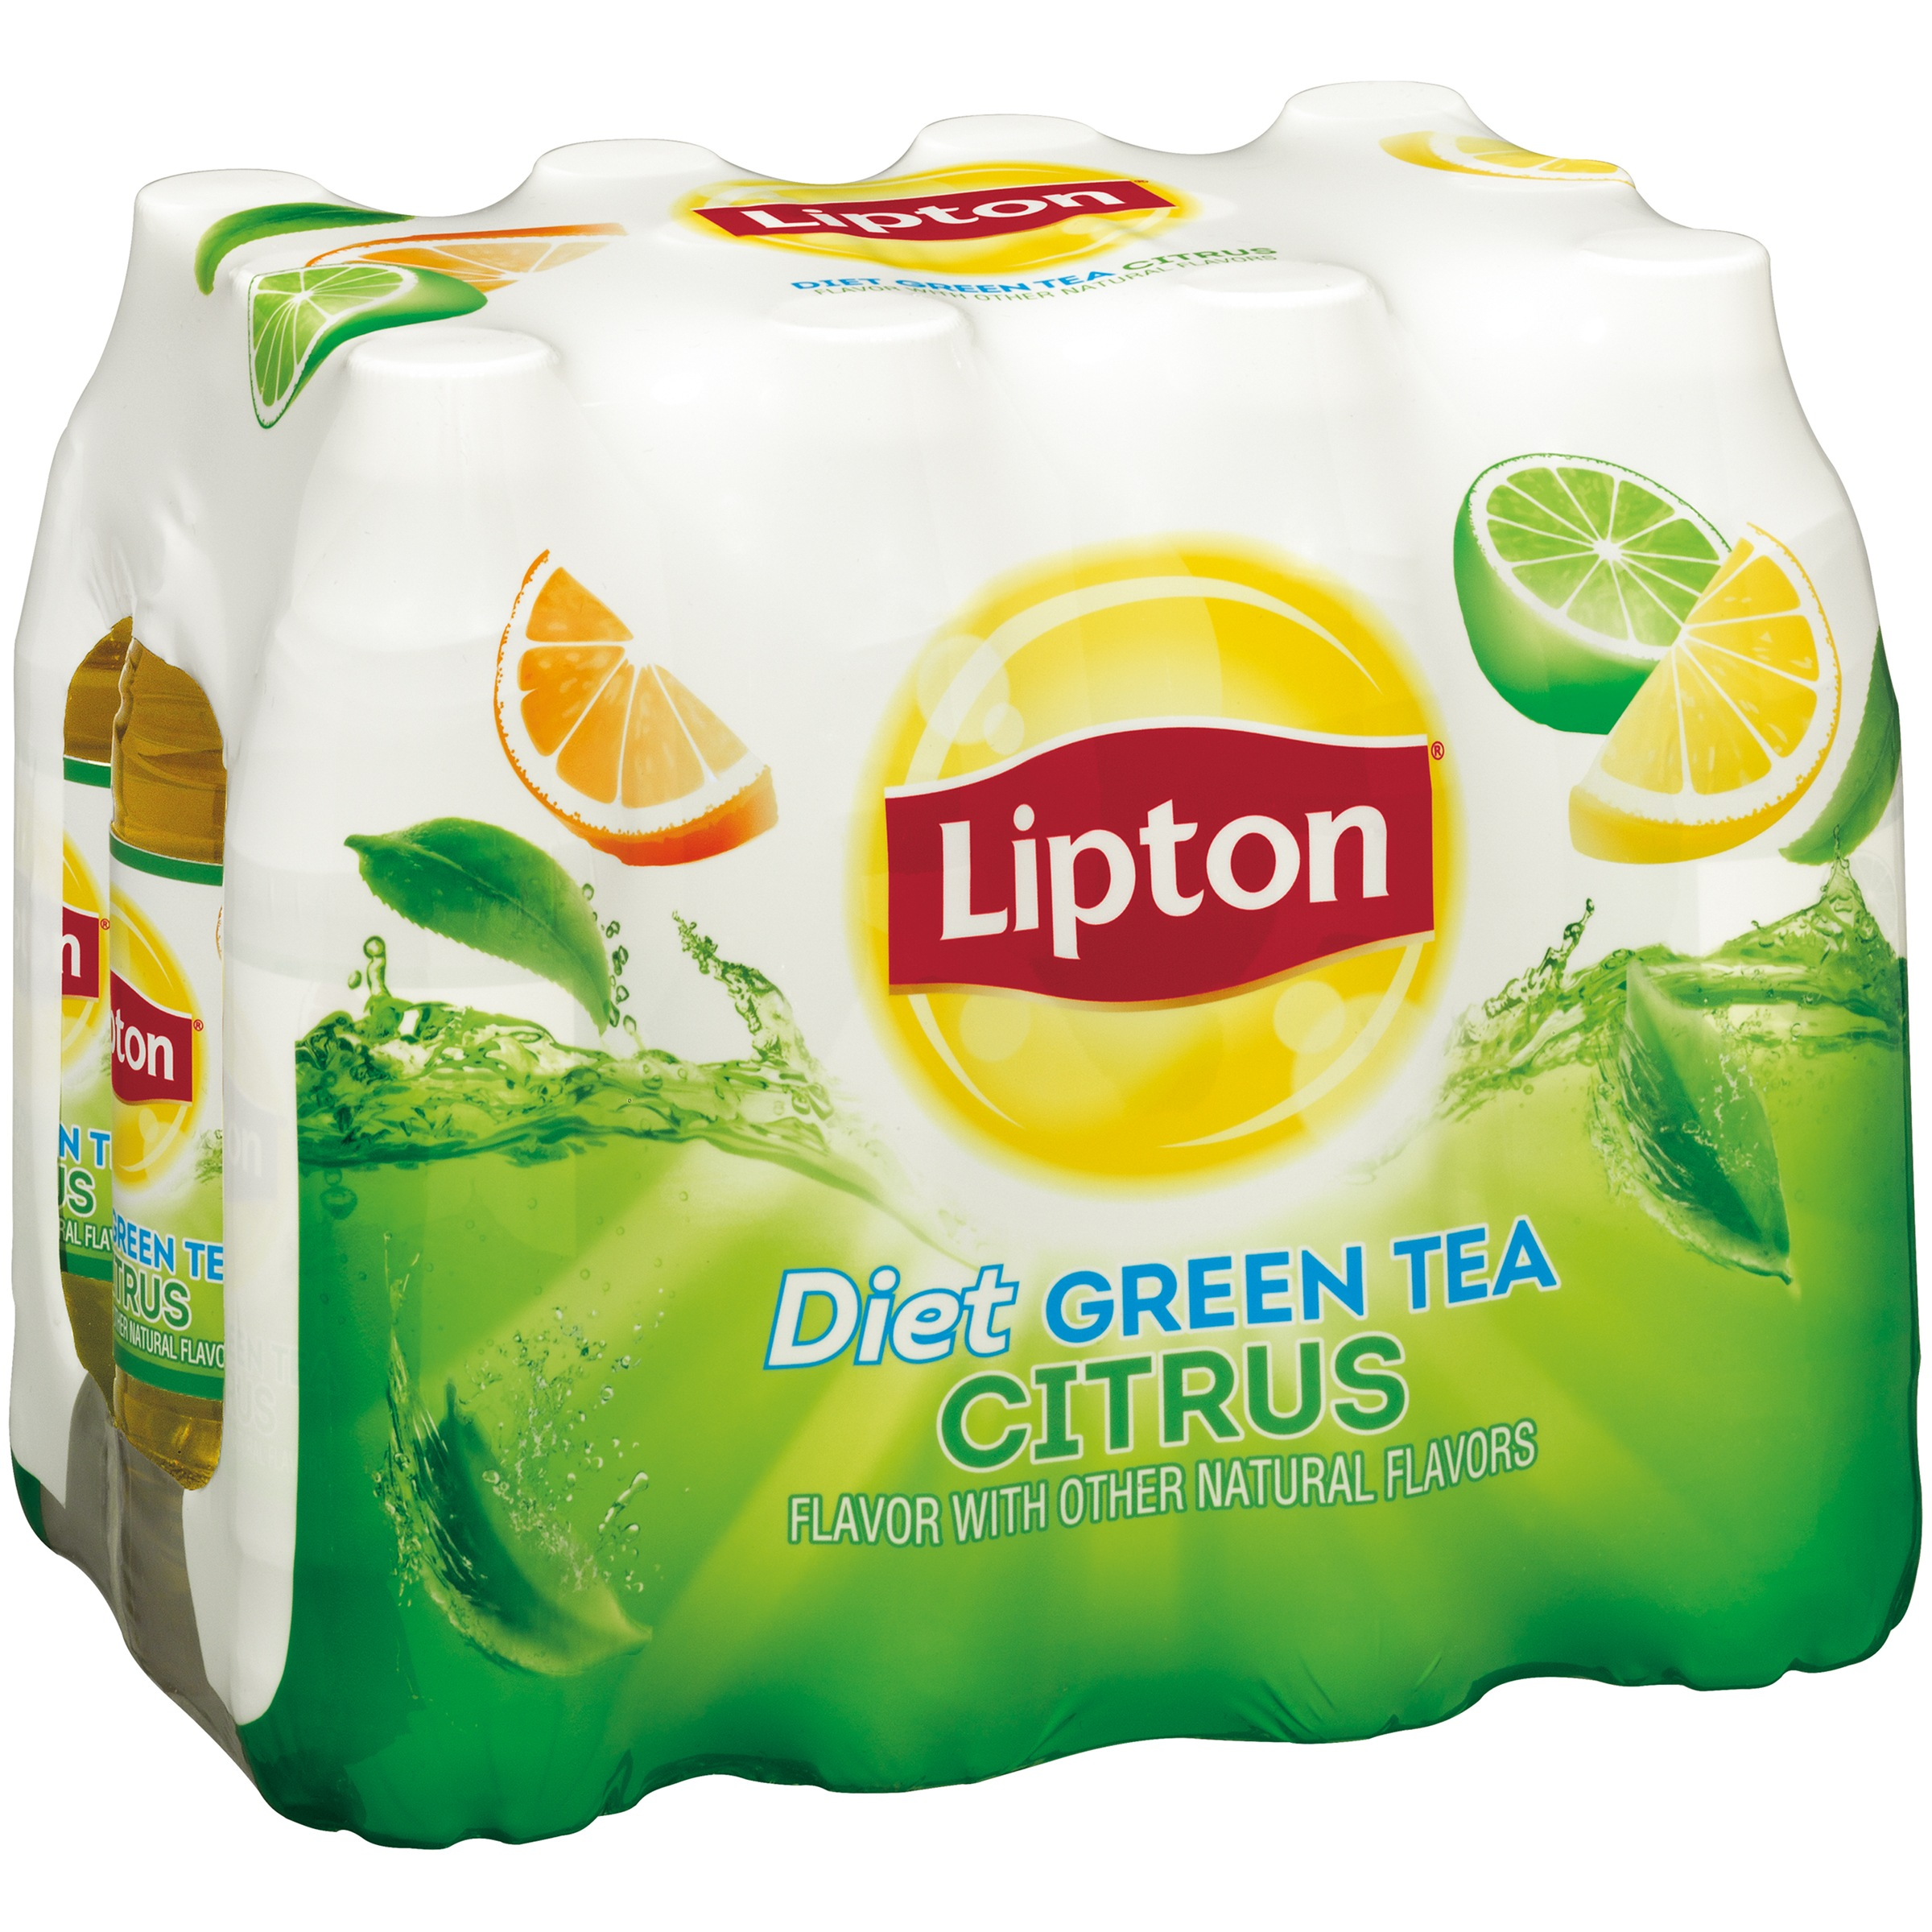 Lipton Diet Diet Green Tea Citrus Iced Tea, 16.9 Fl Oz, 12 Count